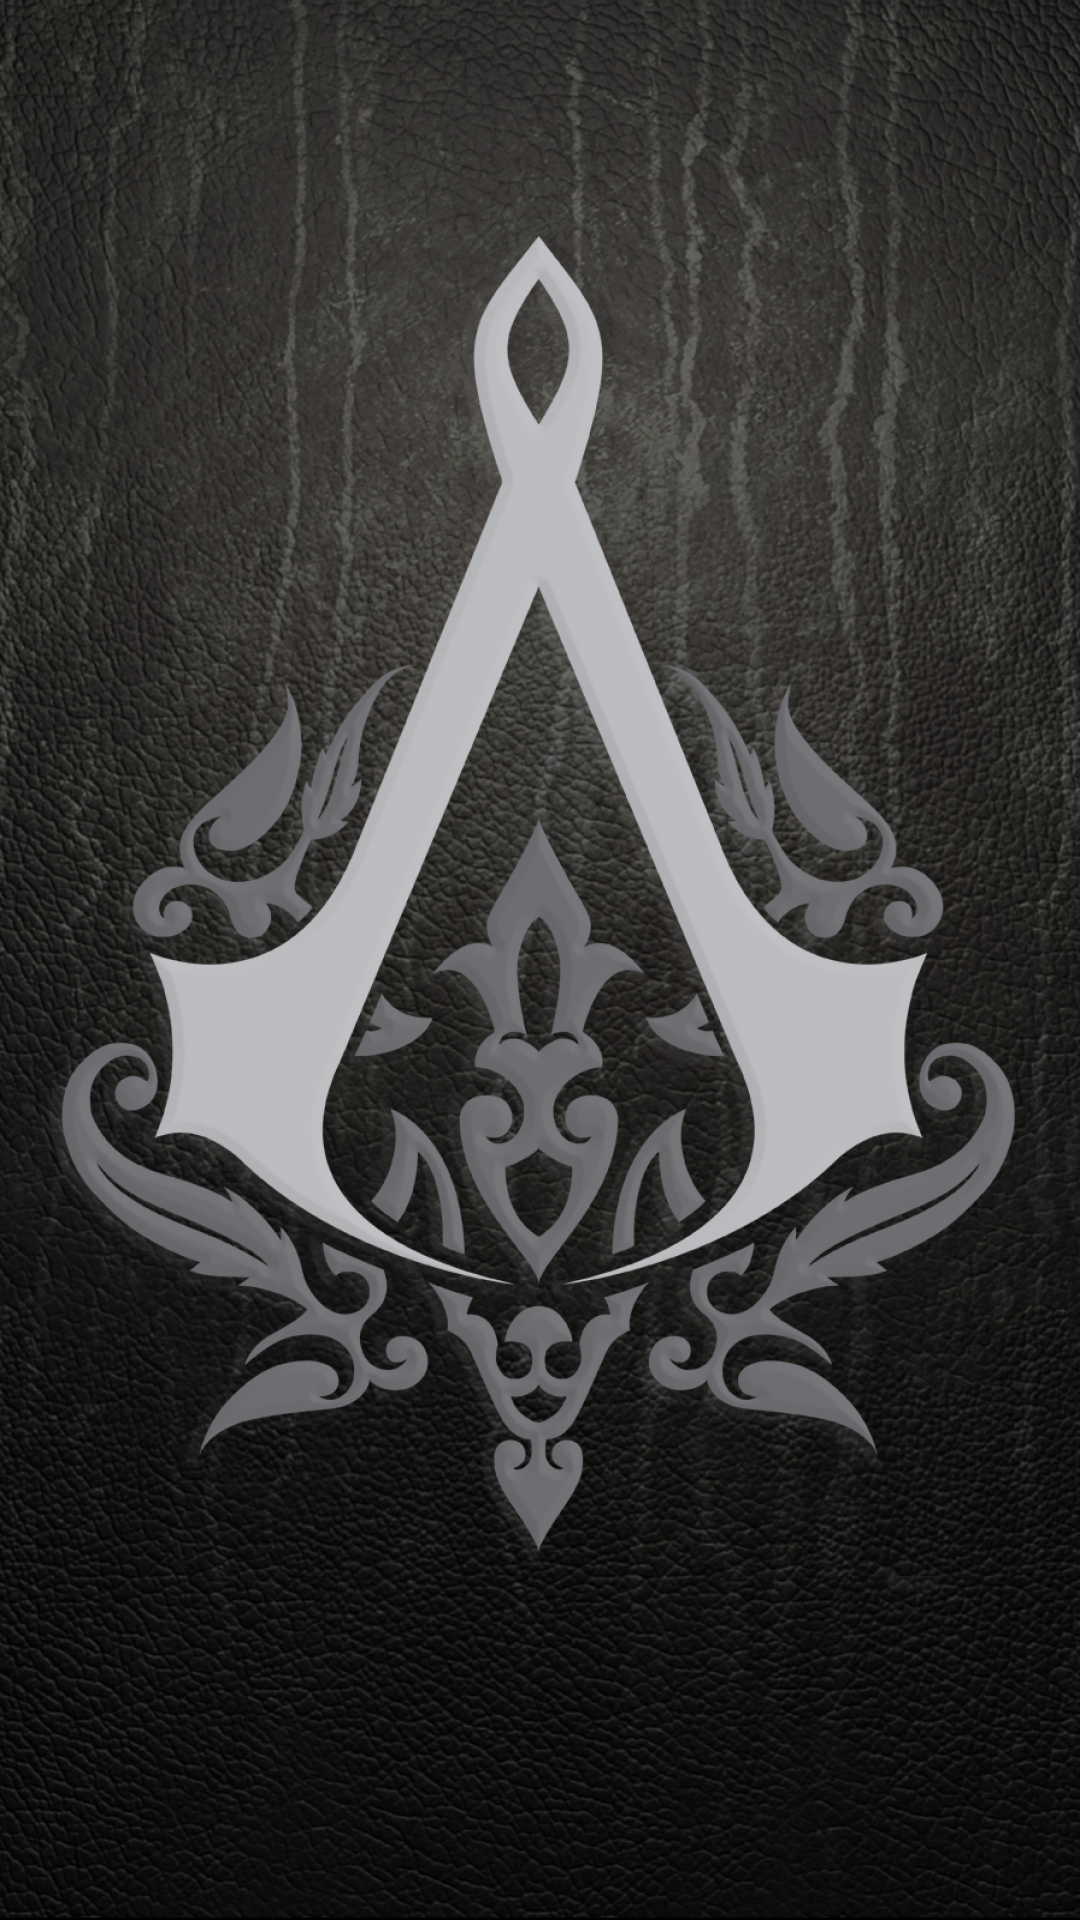 161 assassin's creed apple/iphone 7 plus (1080x1920) wallpapers